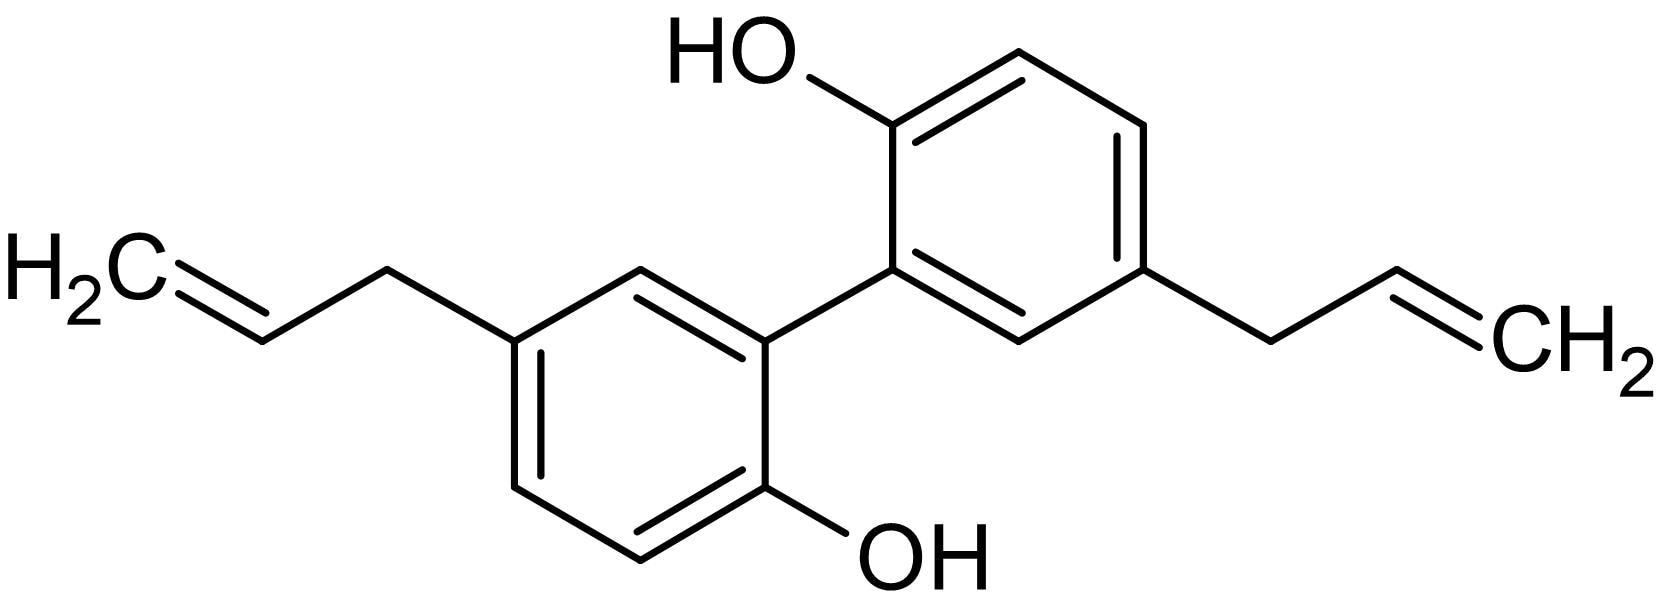 Chemical Structure - Magnolol (5,5'-Diallyl-2,2'-dihydroxybiphenyl), antioxidant (ab142443)